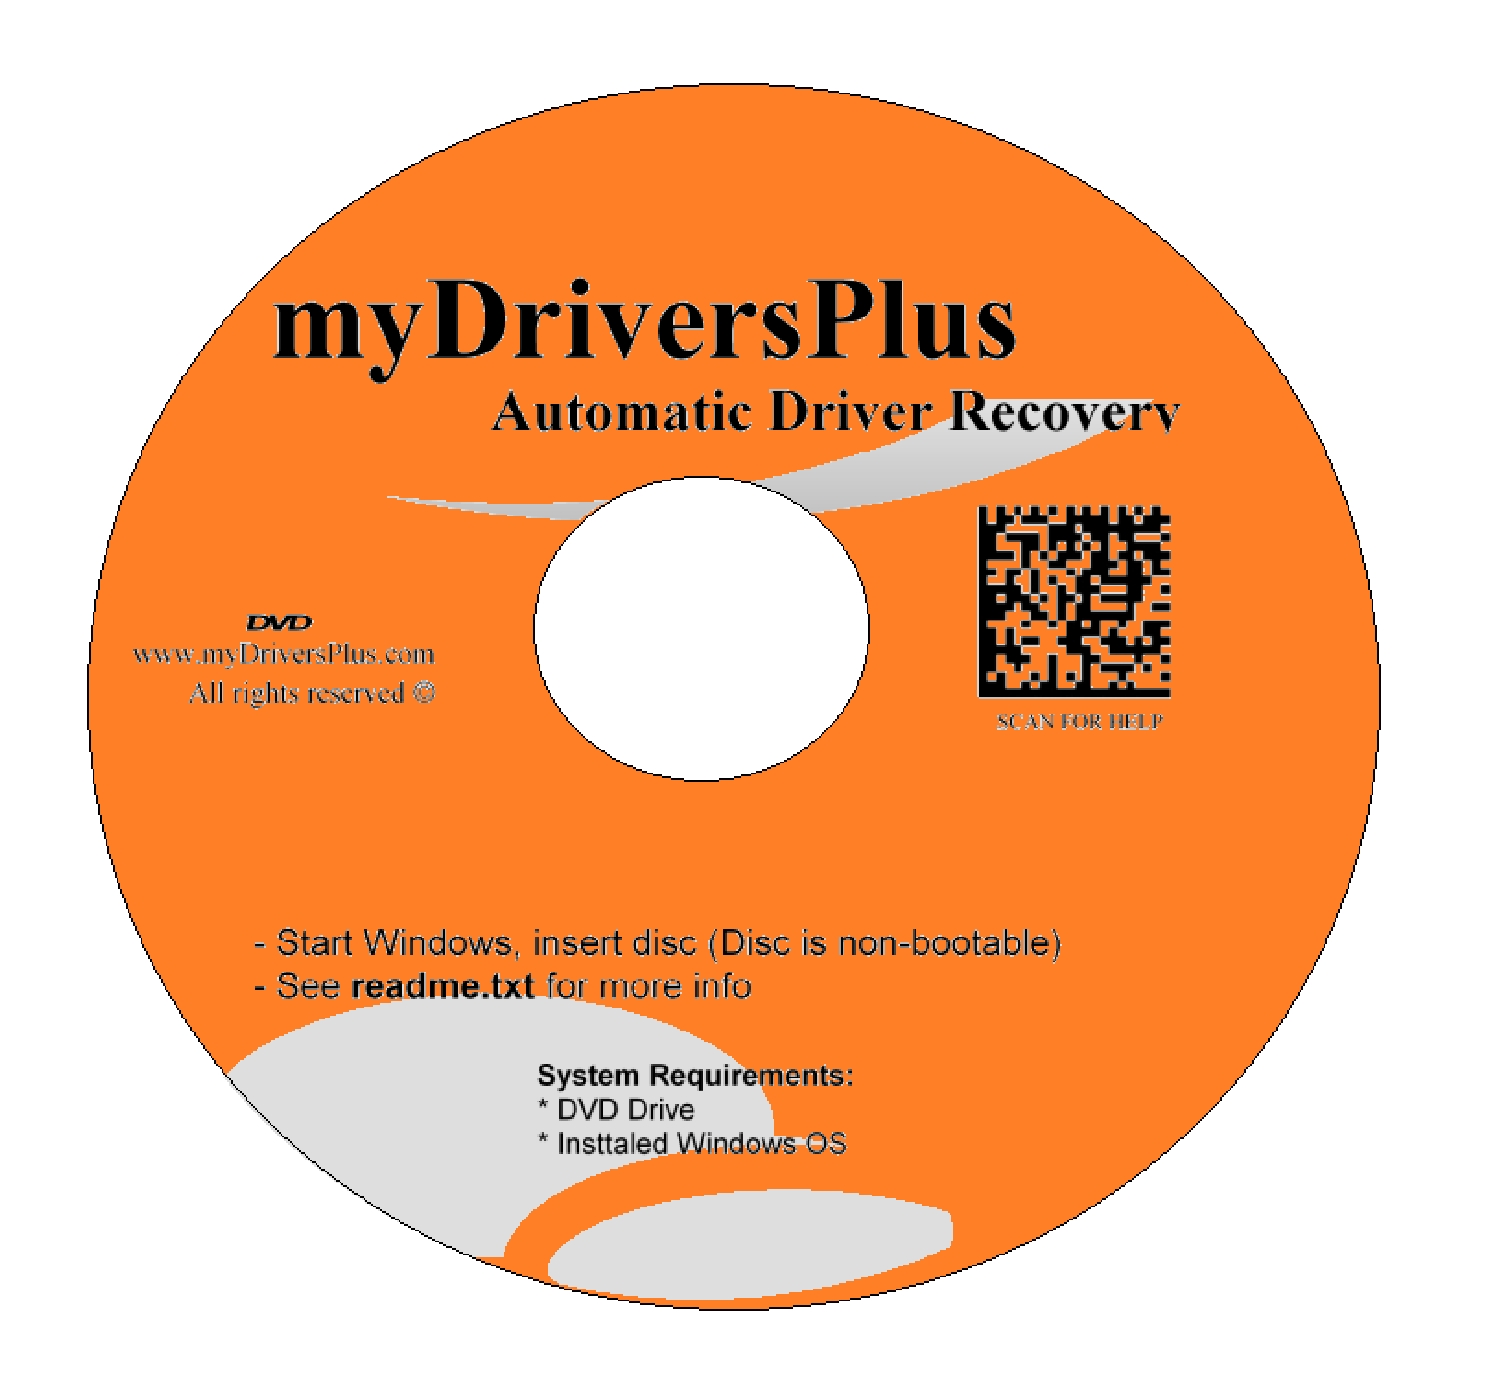 IBM ThinkPad T20 Drivers Recovery Restore Resource Utilities Software with Automatic One-Click Installer Unattended for Internet, Wi-Fi, Ethernet, Video, Sound, Audio, USB, Devices, Chipset ...(DVD R